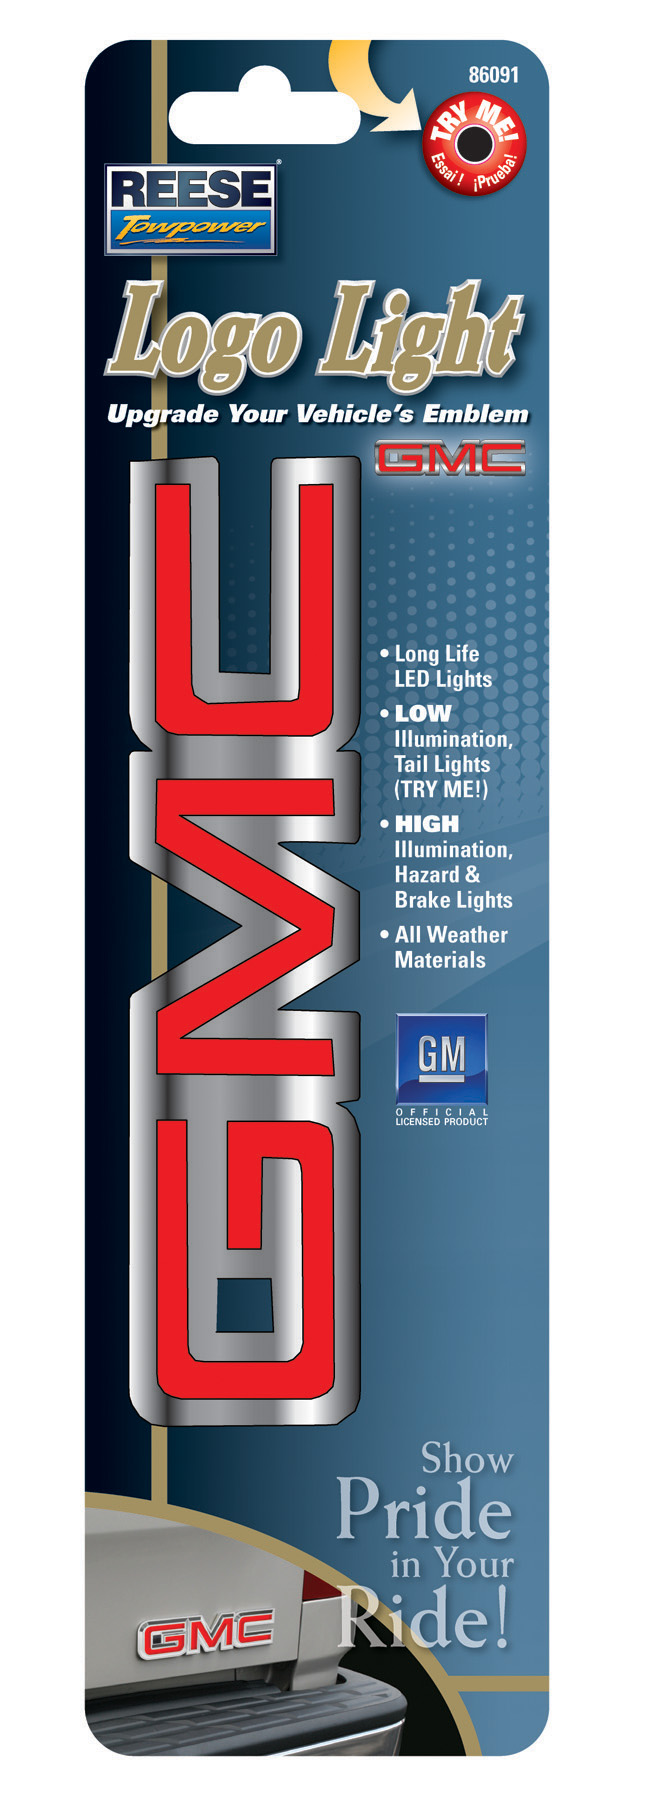 Lighted GMC Emblem http://www.prweb.com/releases/led-hitch-covers-emblems/lighted-hitch-covers/prweb8294392.htm